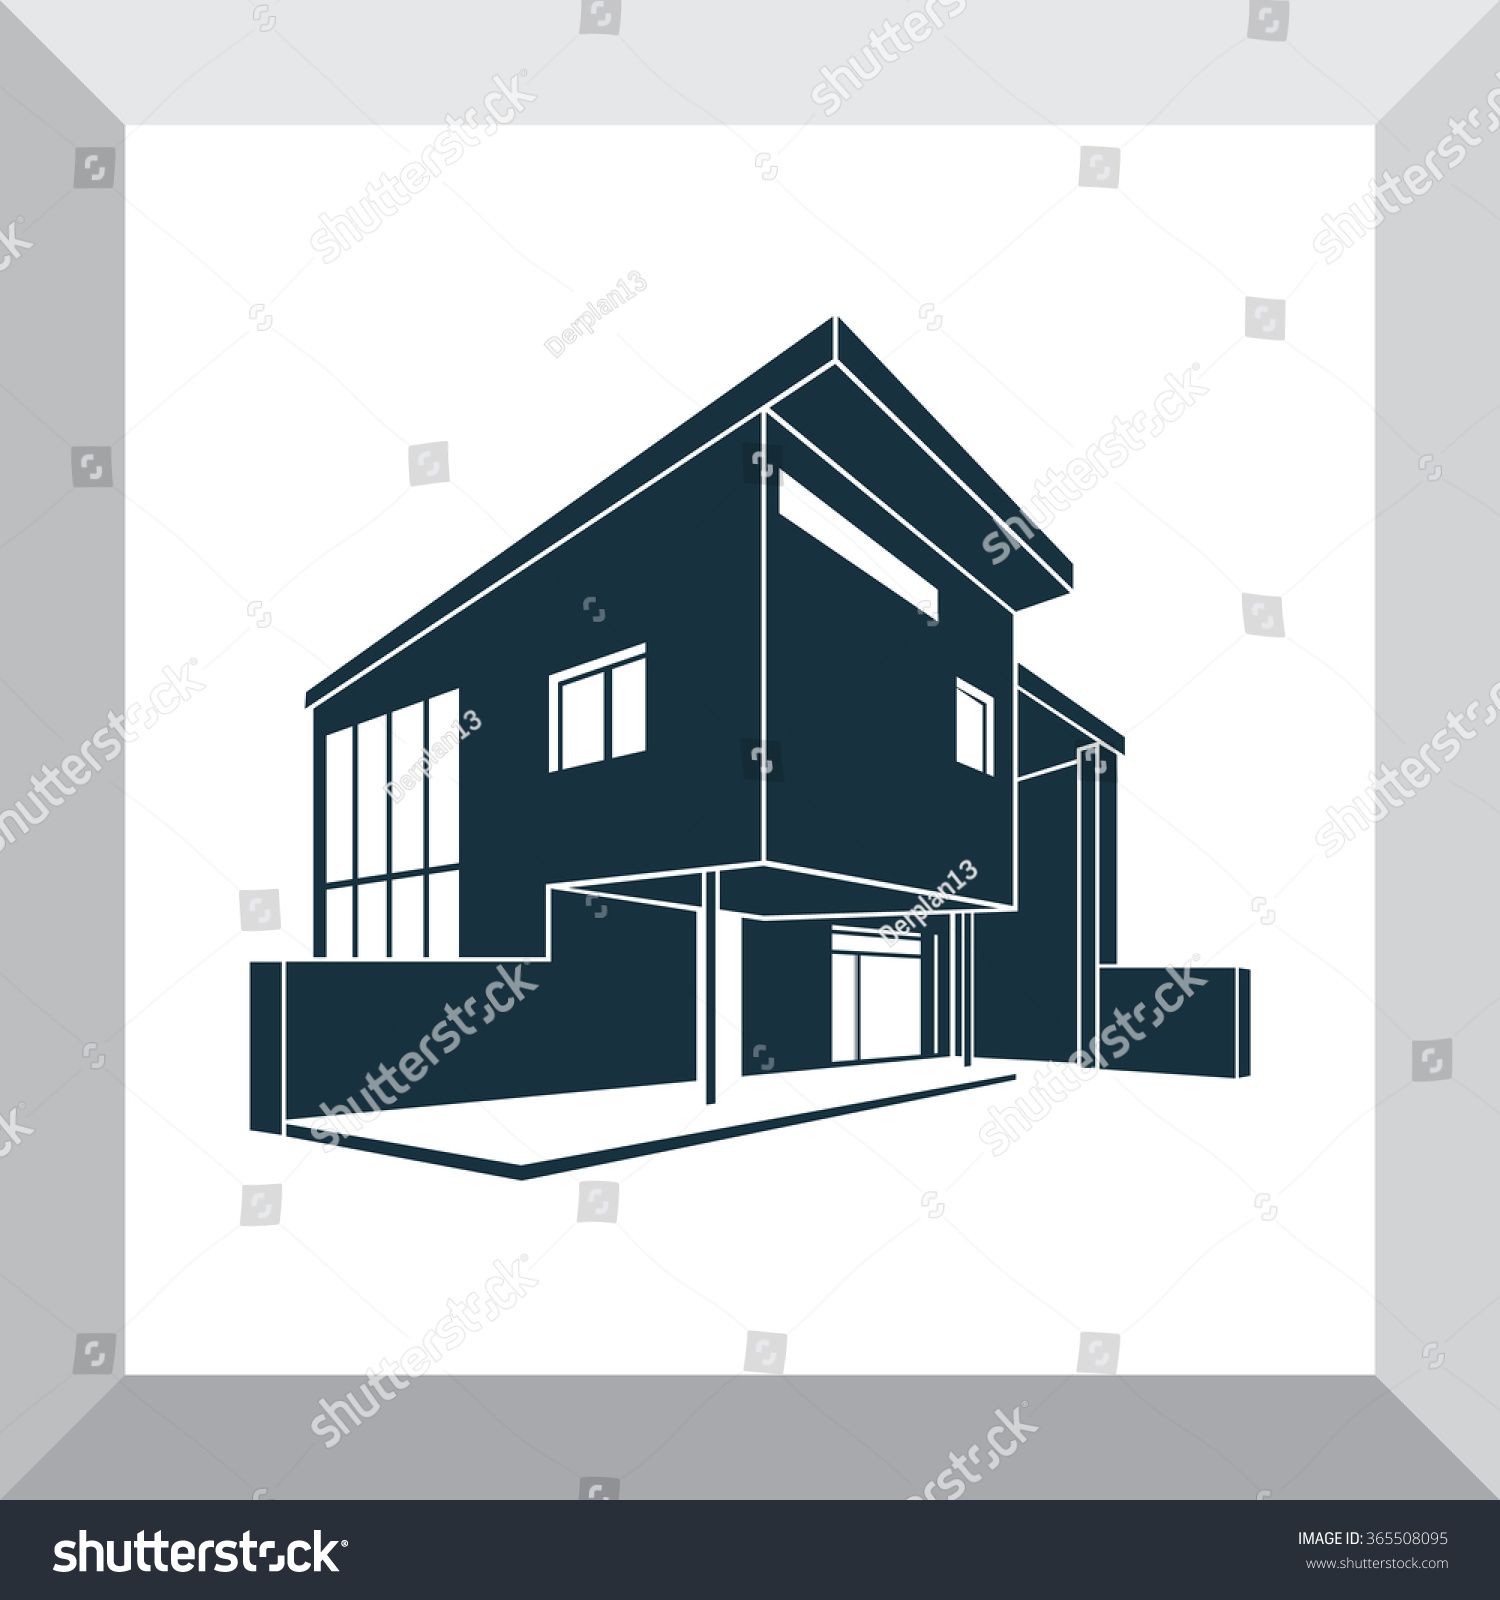 Modern house silhouette vector image of a modern and trendy design of